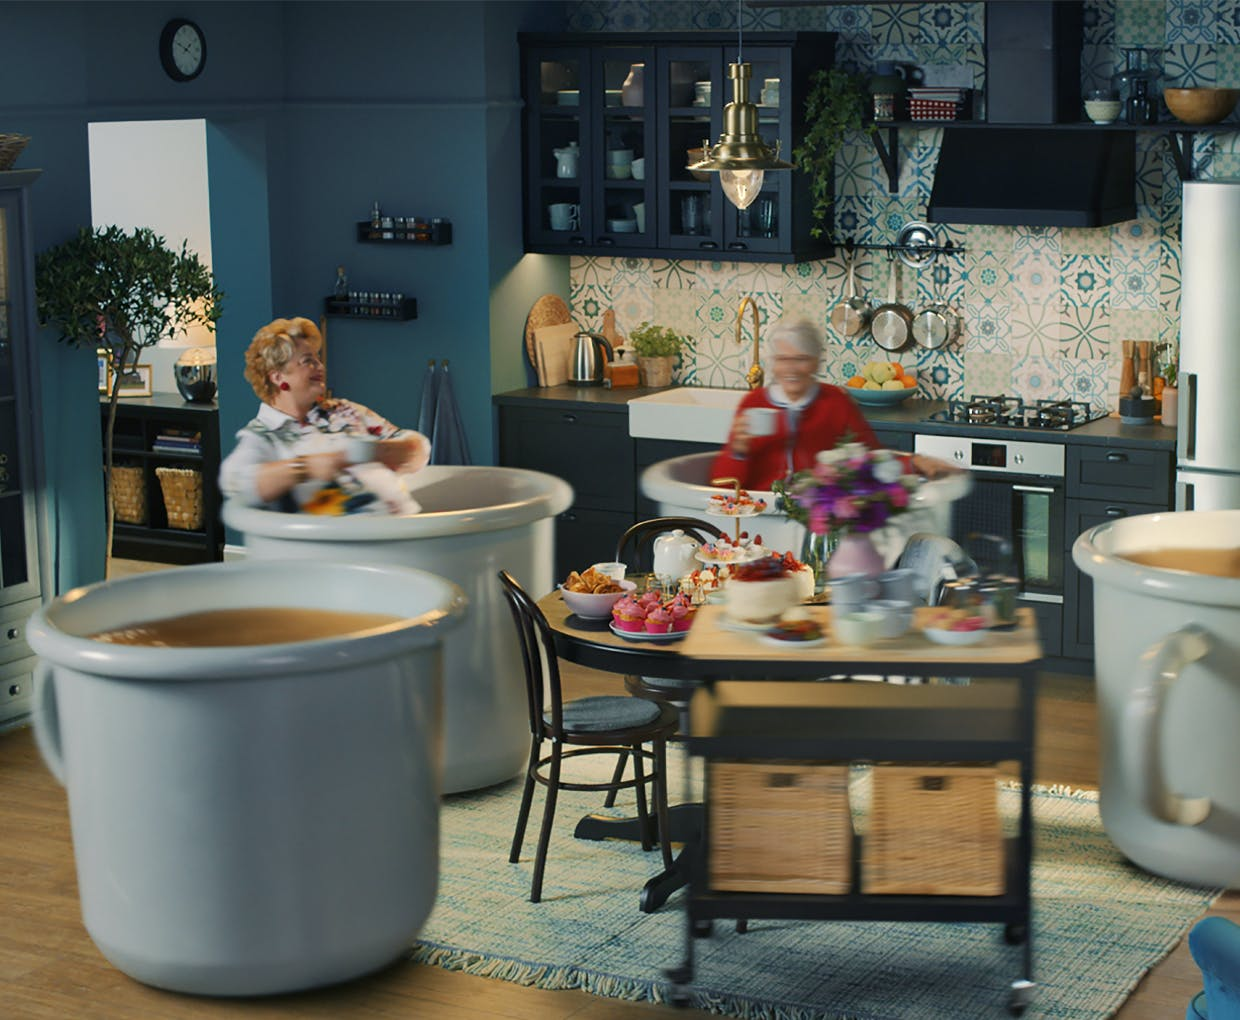 Ikea Shifts Marketing Strategy To Focus On Product Innovation Rather